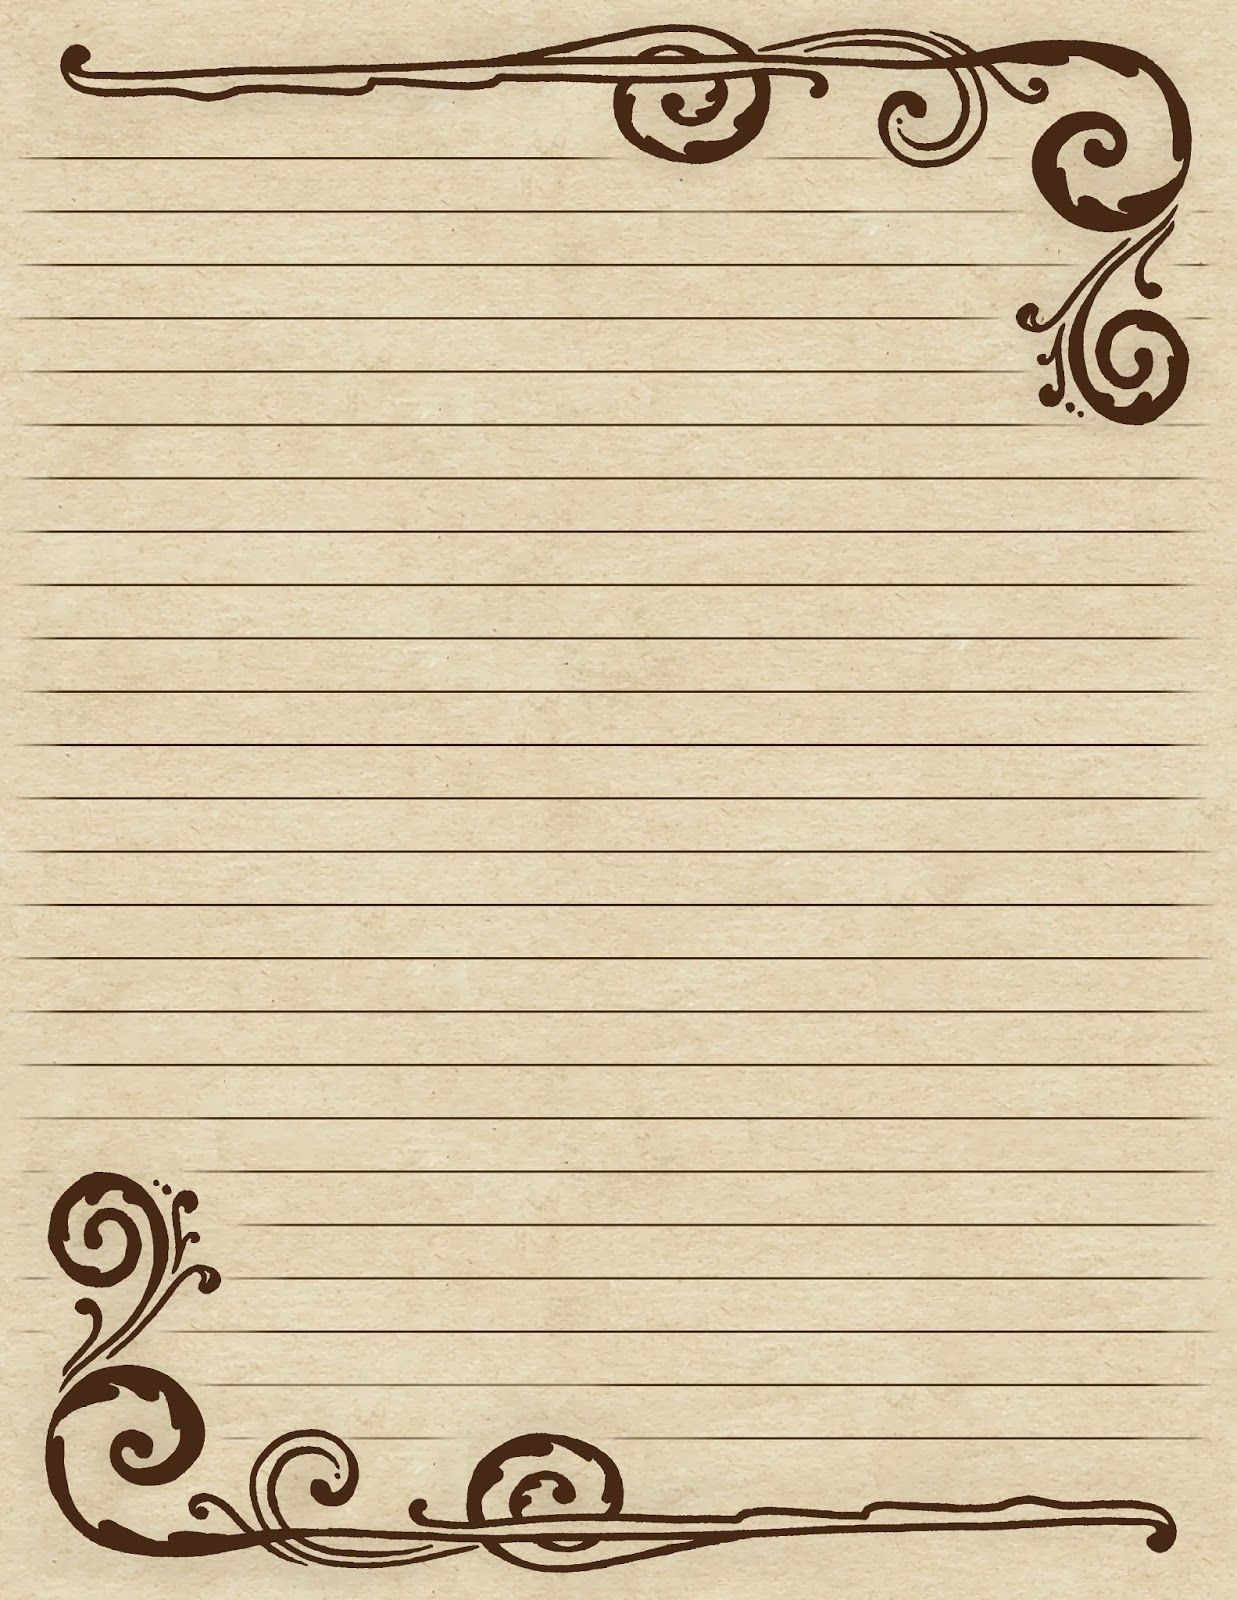 ... +Paper+You+Can+Print Lilac & Lavender: Swirling Border & Lined Paper